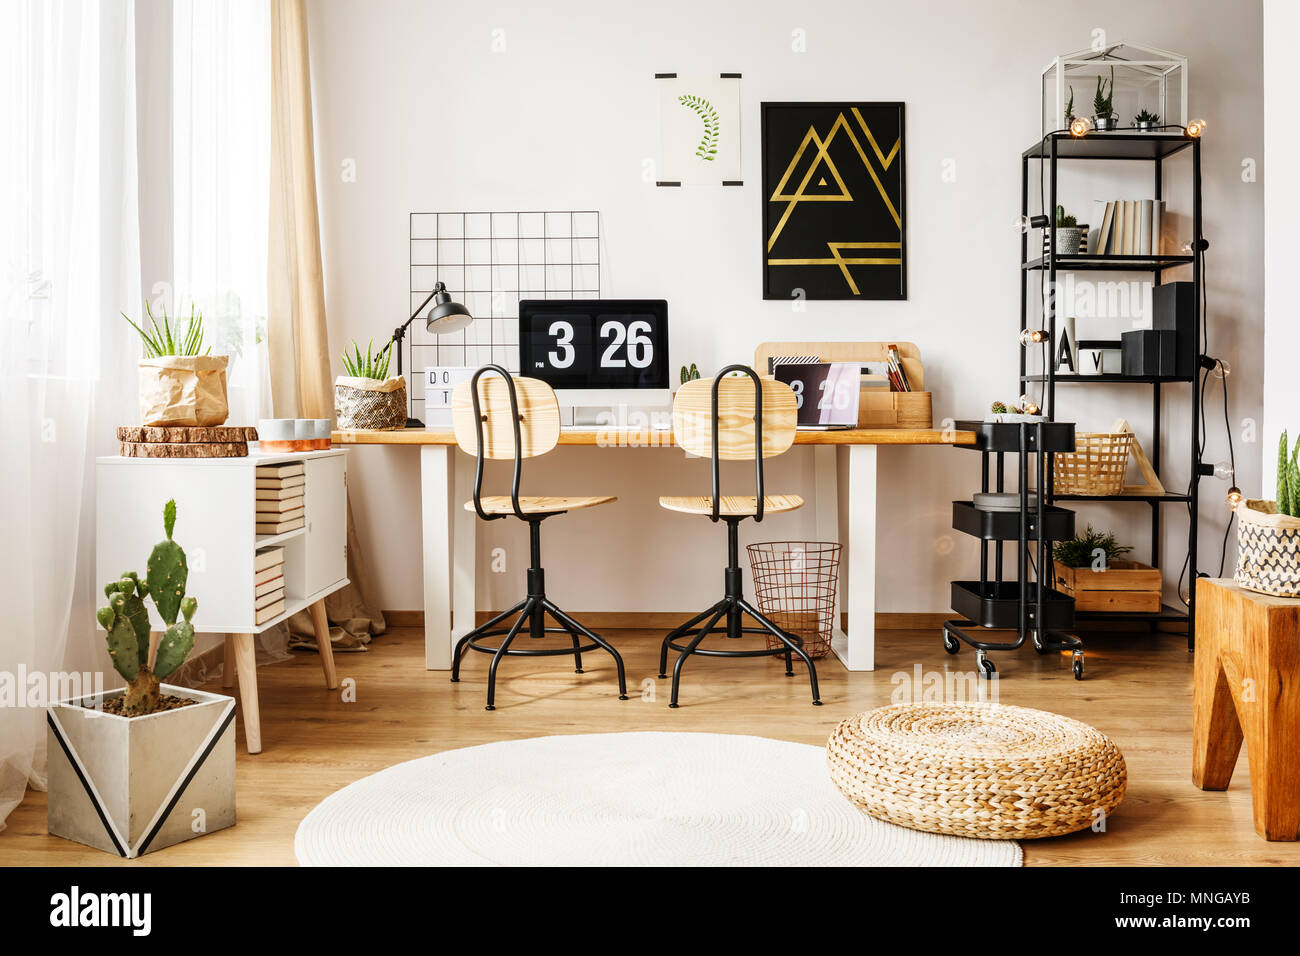 Modern interior of living room poster u pixers u we live to change